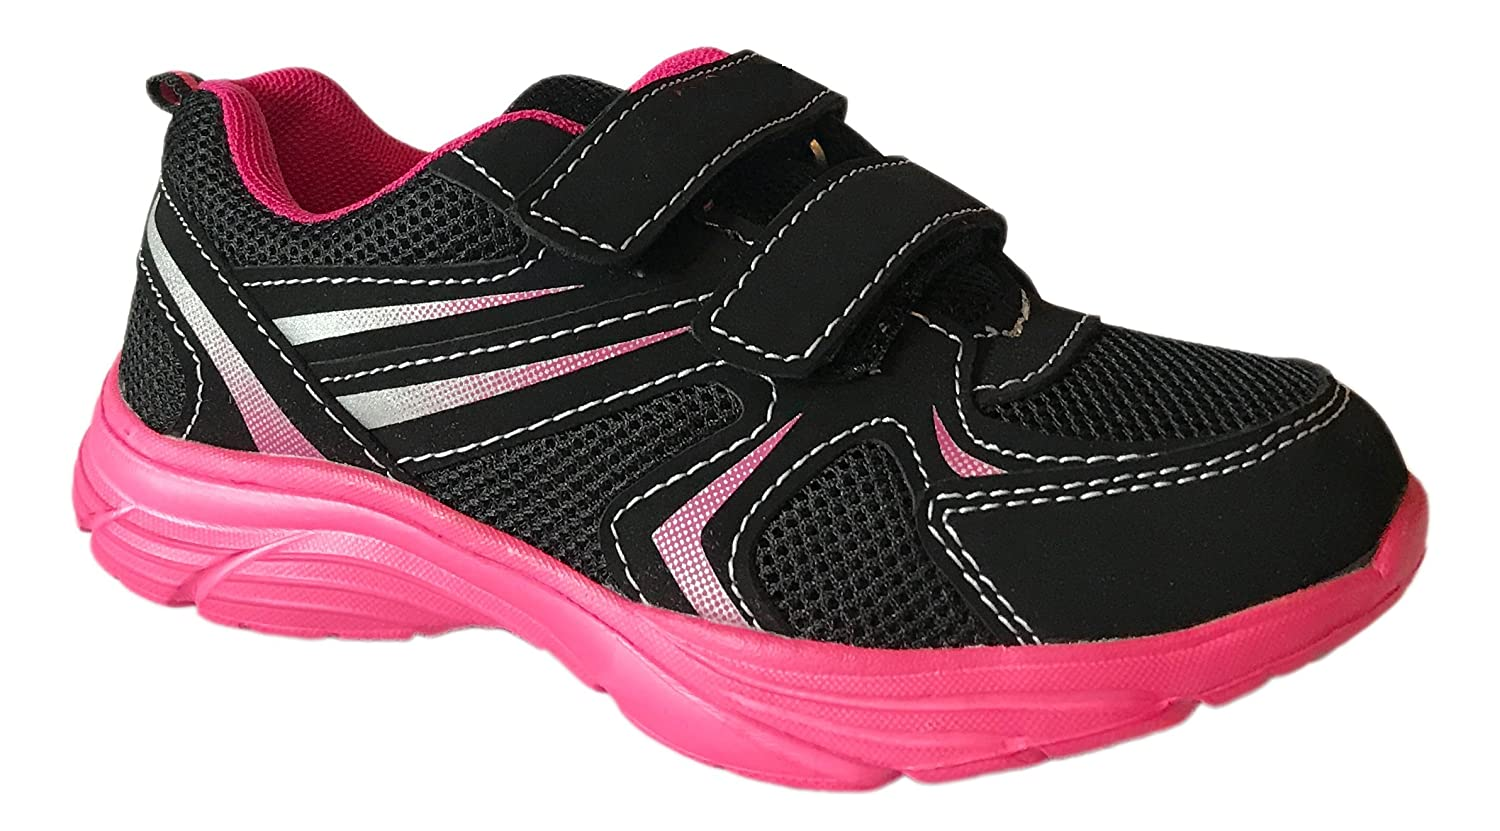 Kid's Light Weight Sneakers Boy's & Girl's Athletic Tennis Running Shoes